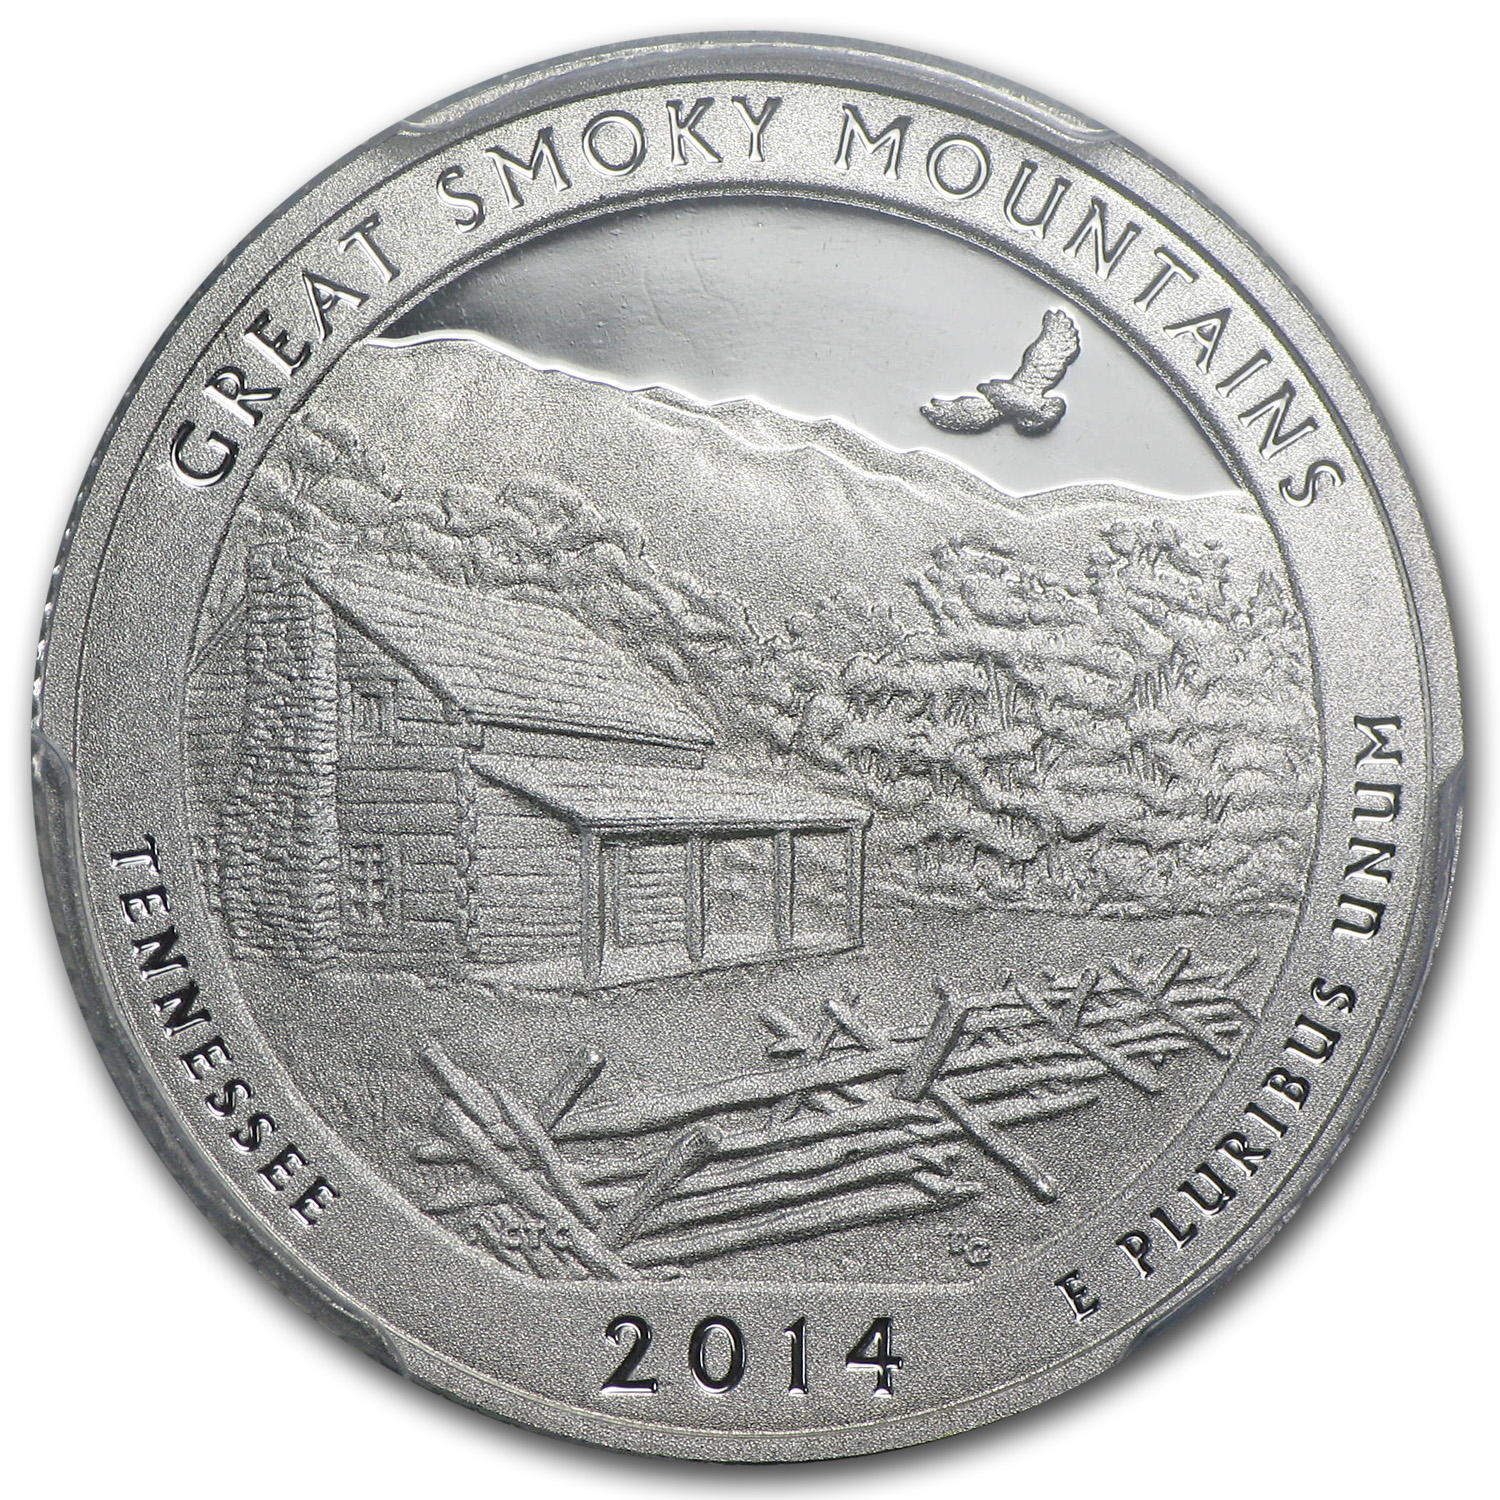 2014-S Silver Proof Quarter ATB Smoky Mountain PR-70 DCAM (FS)